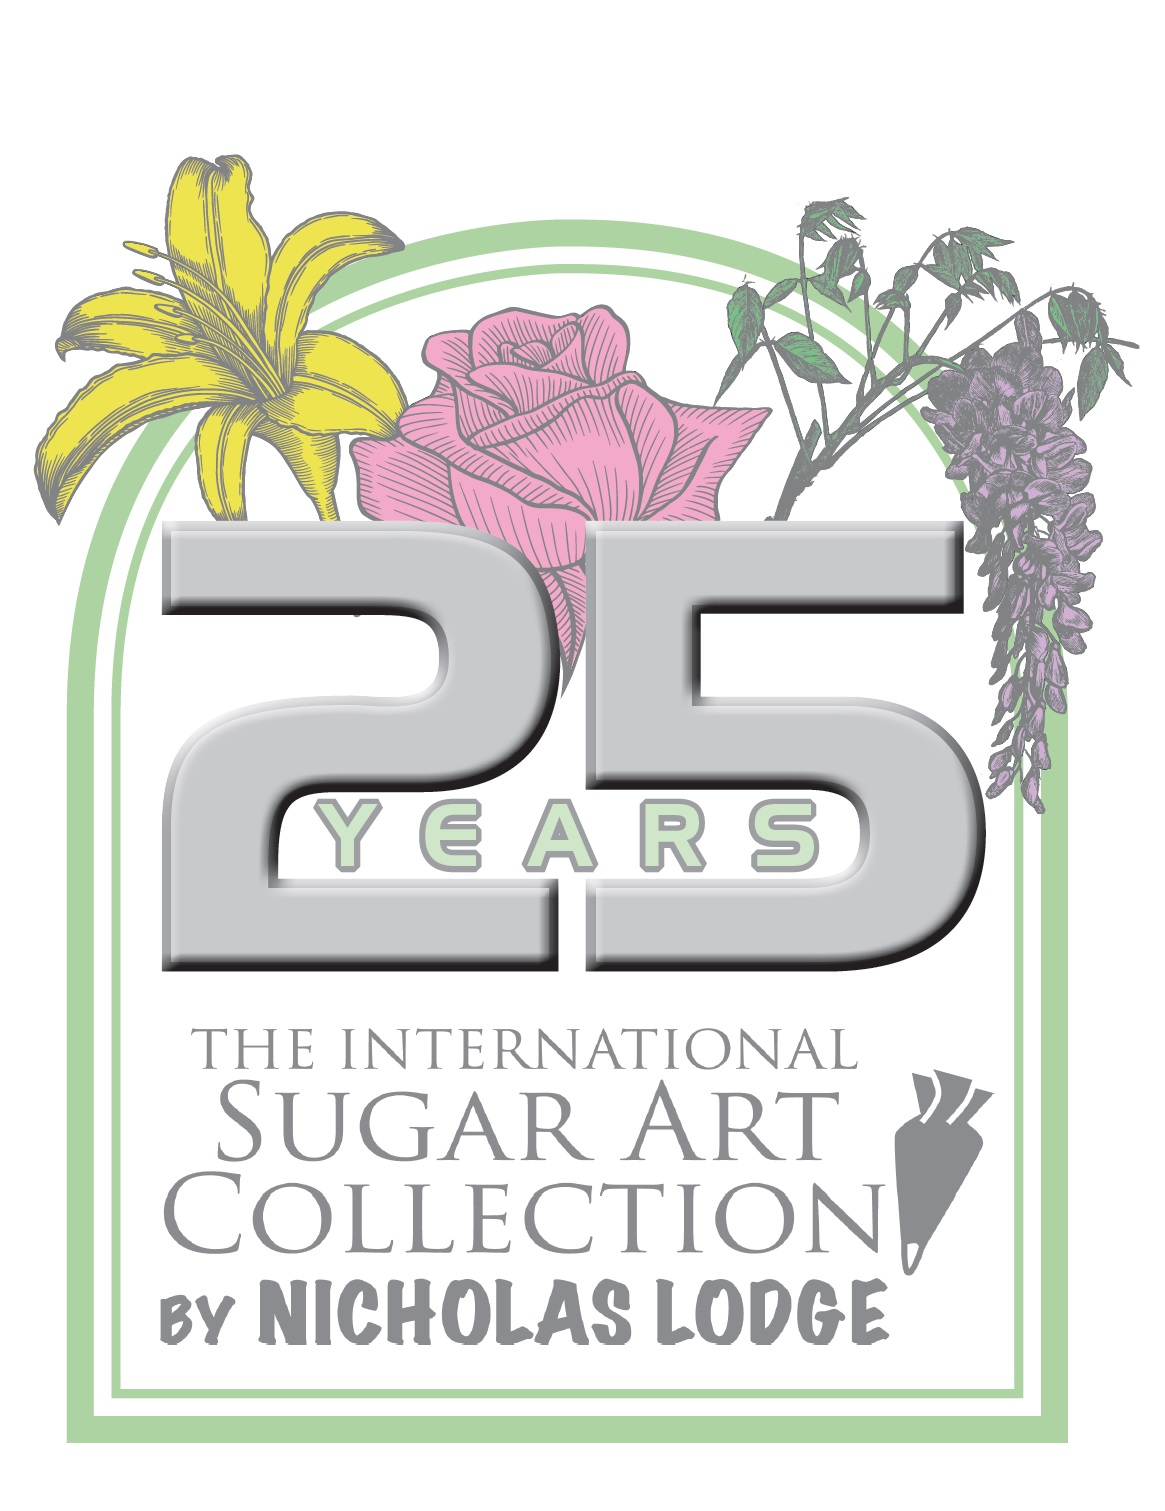 shop til you drop at the 25th anniversary celebration